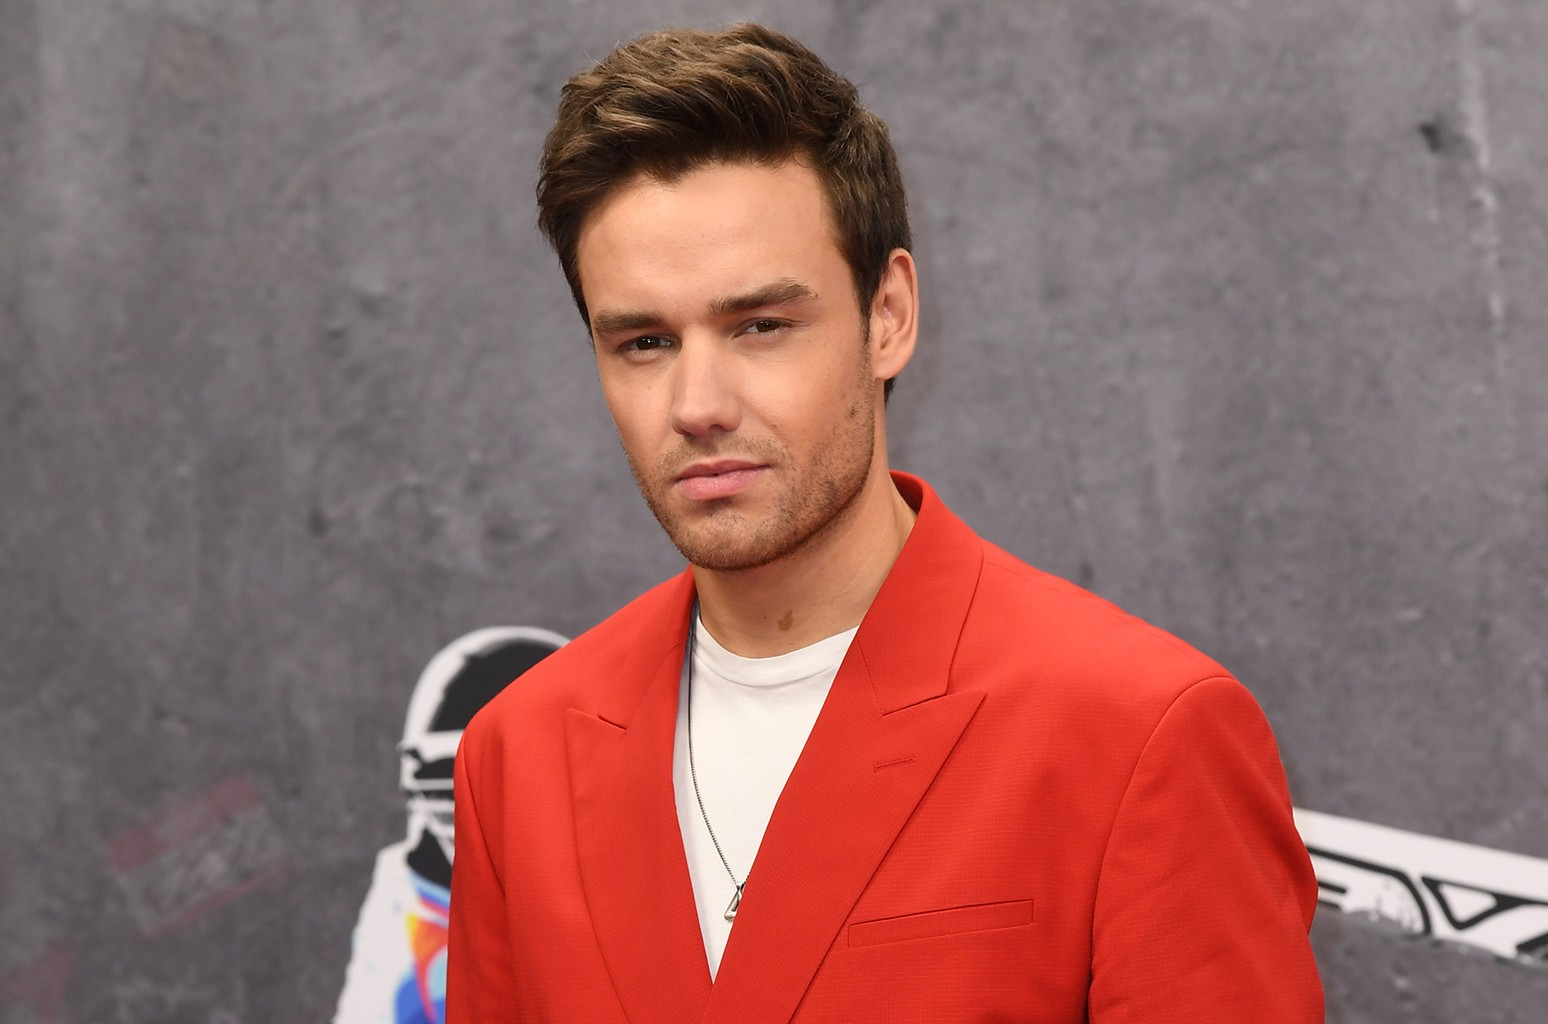 Liam Payne Opens Up About the Complications of Co-Parenting During the Pandemic